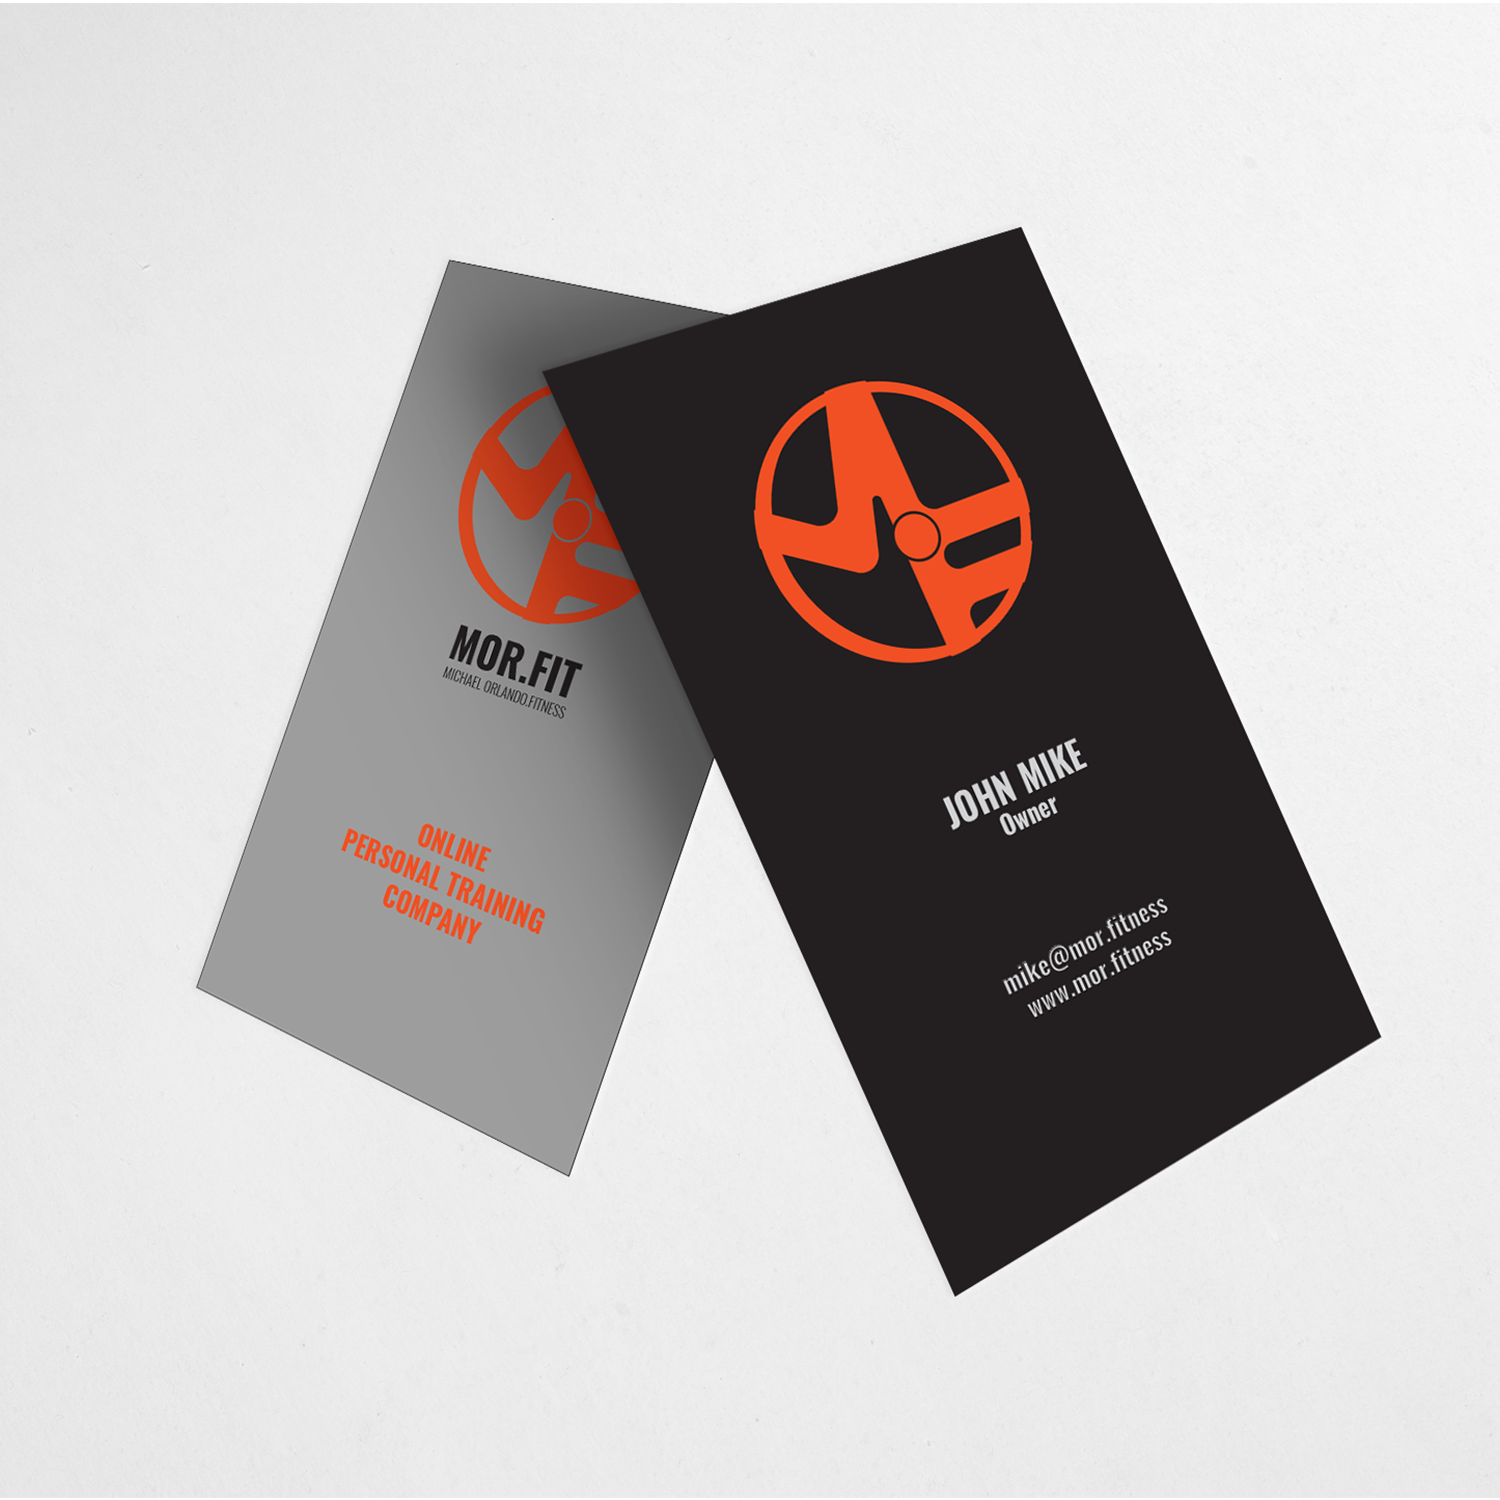 Professional modern personal trainer business card design for business card design by hr khan for michael orlando fitness design 16814052 reheart Image collections